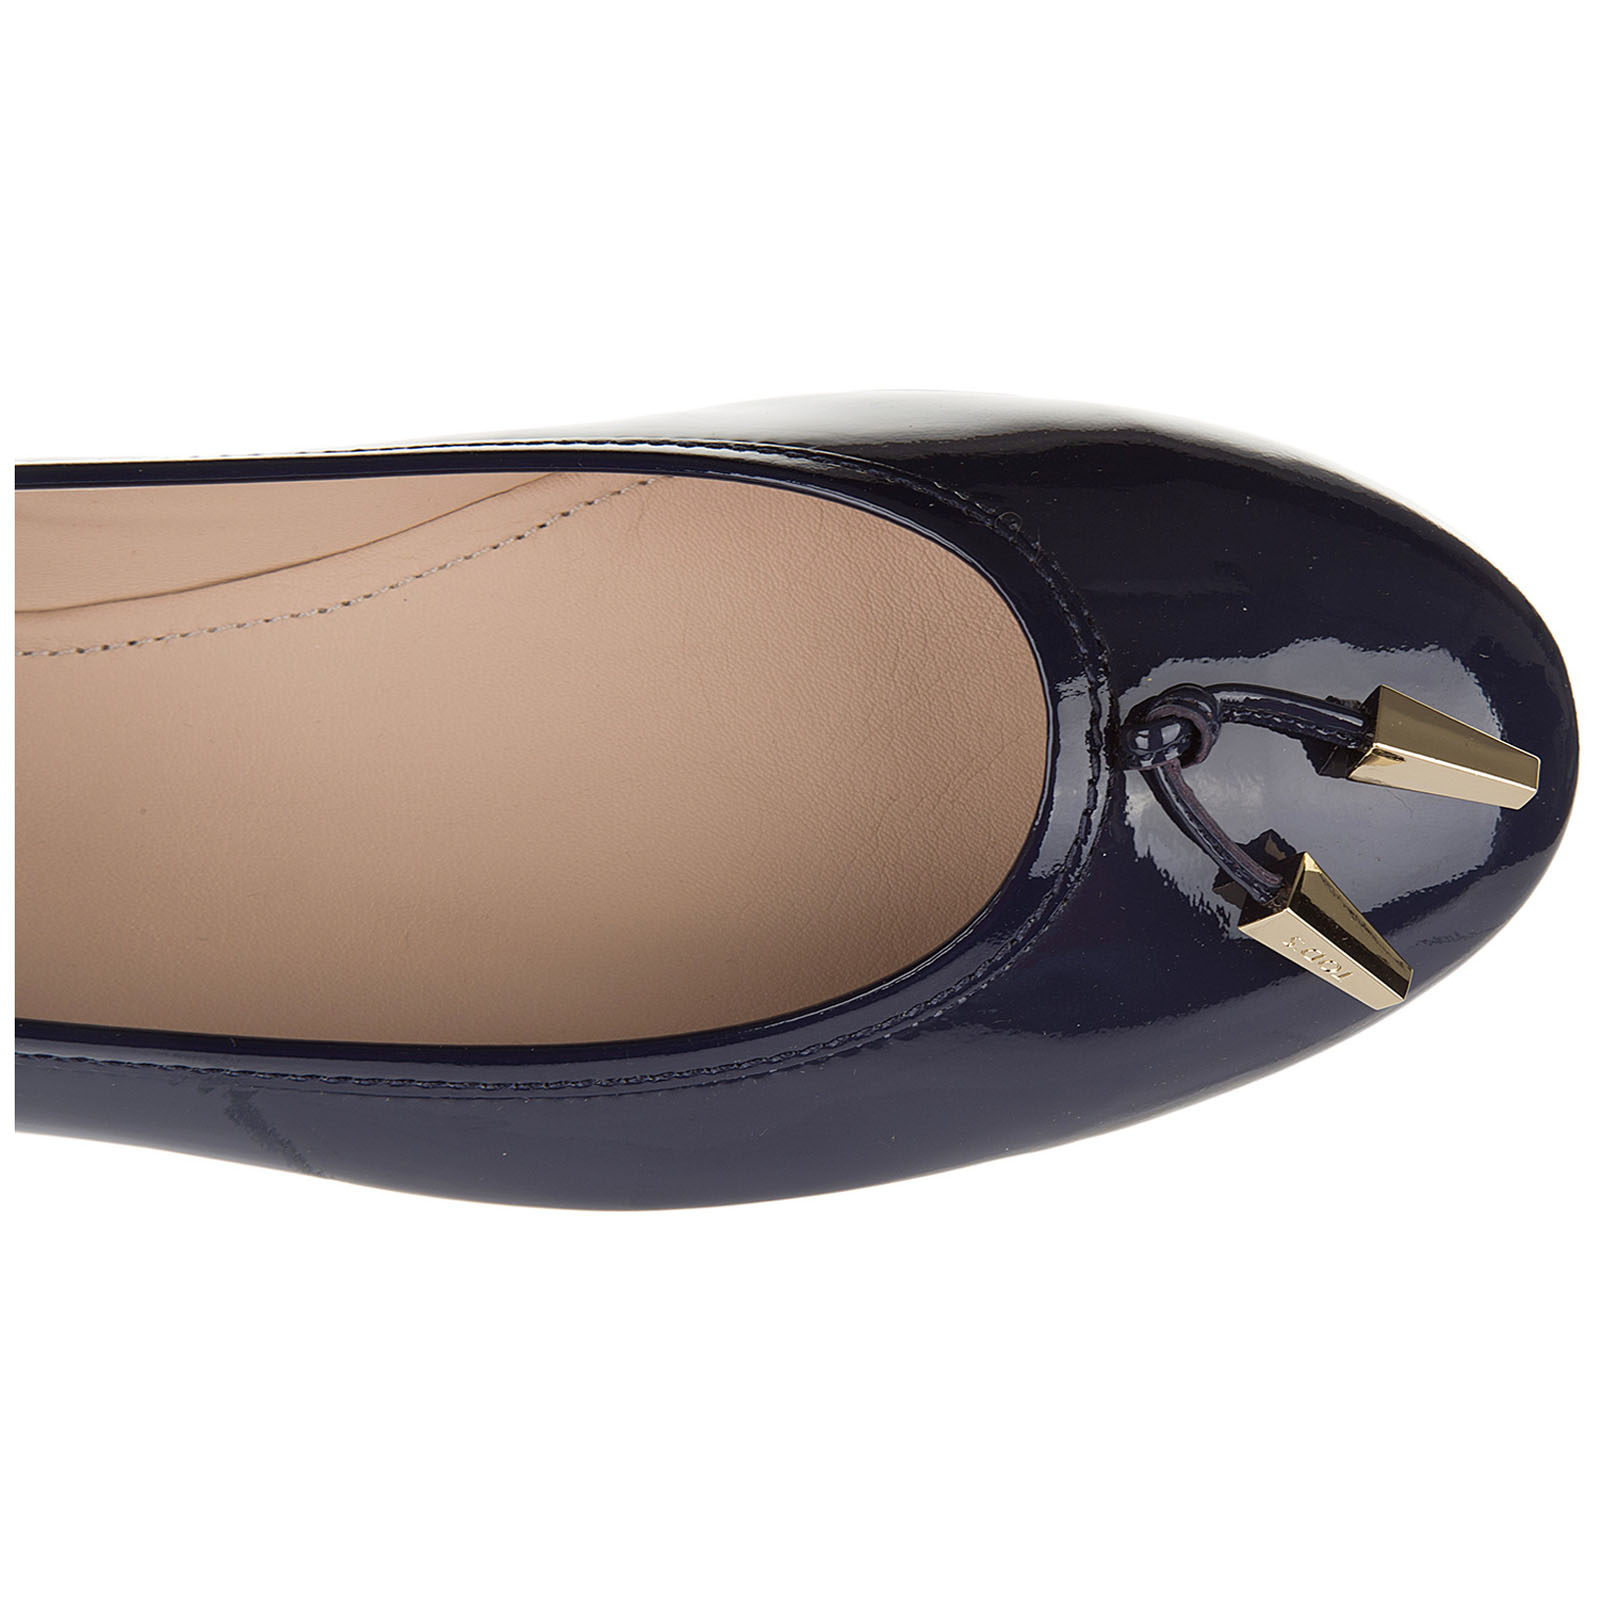 Damen leather ballet flats ballerinas  des yh laccetto terminali